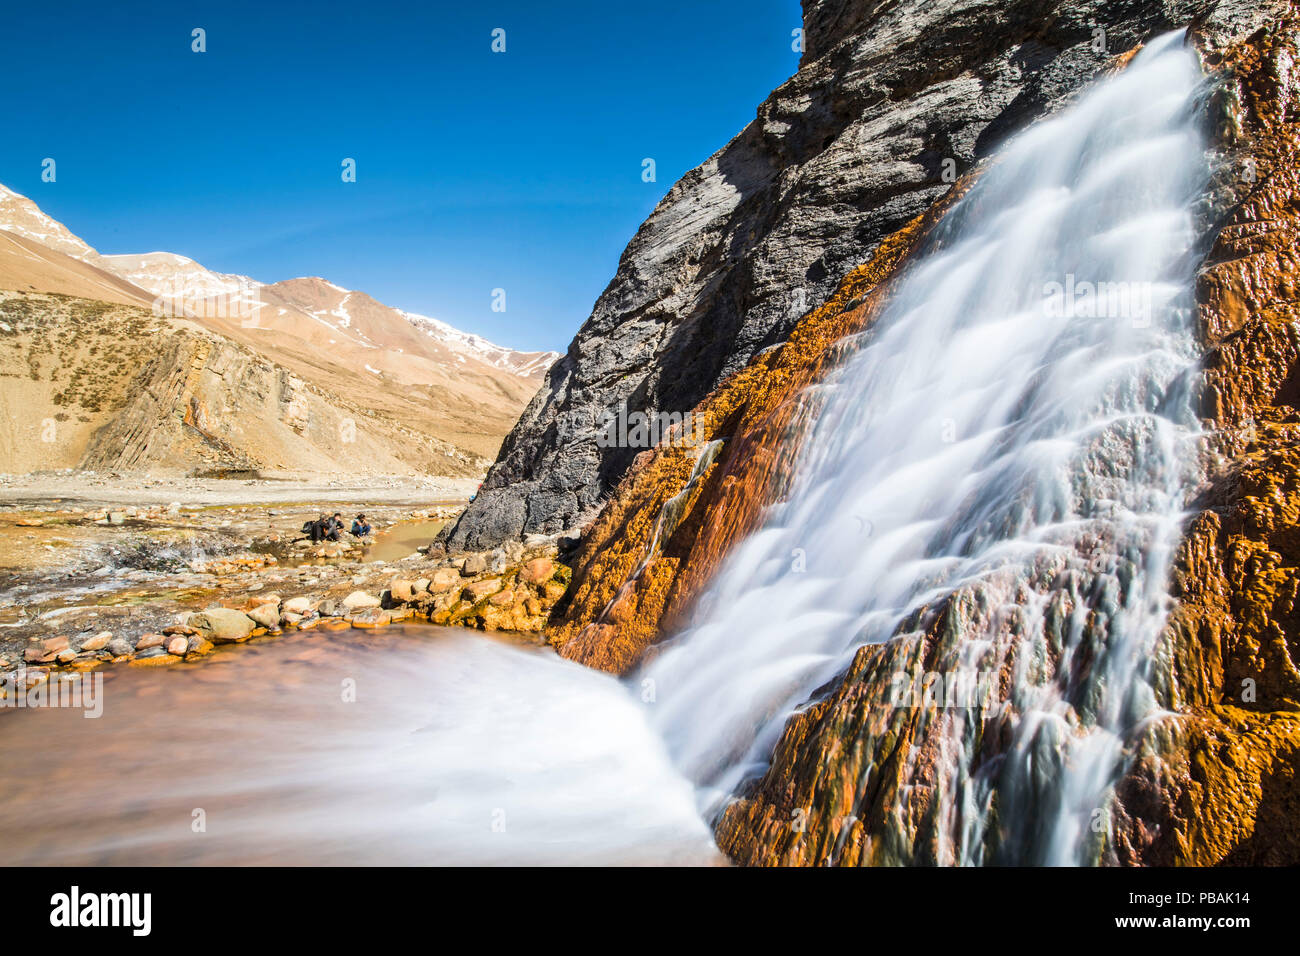 Thermal waters at Termas del Plomo inside Central Andes mountains. Just an amazing view of reflections and colors of a volcanic activity view - Stock Image